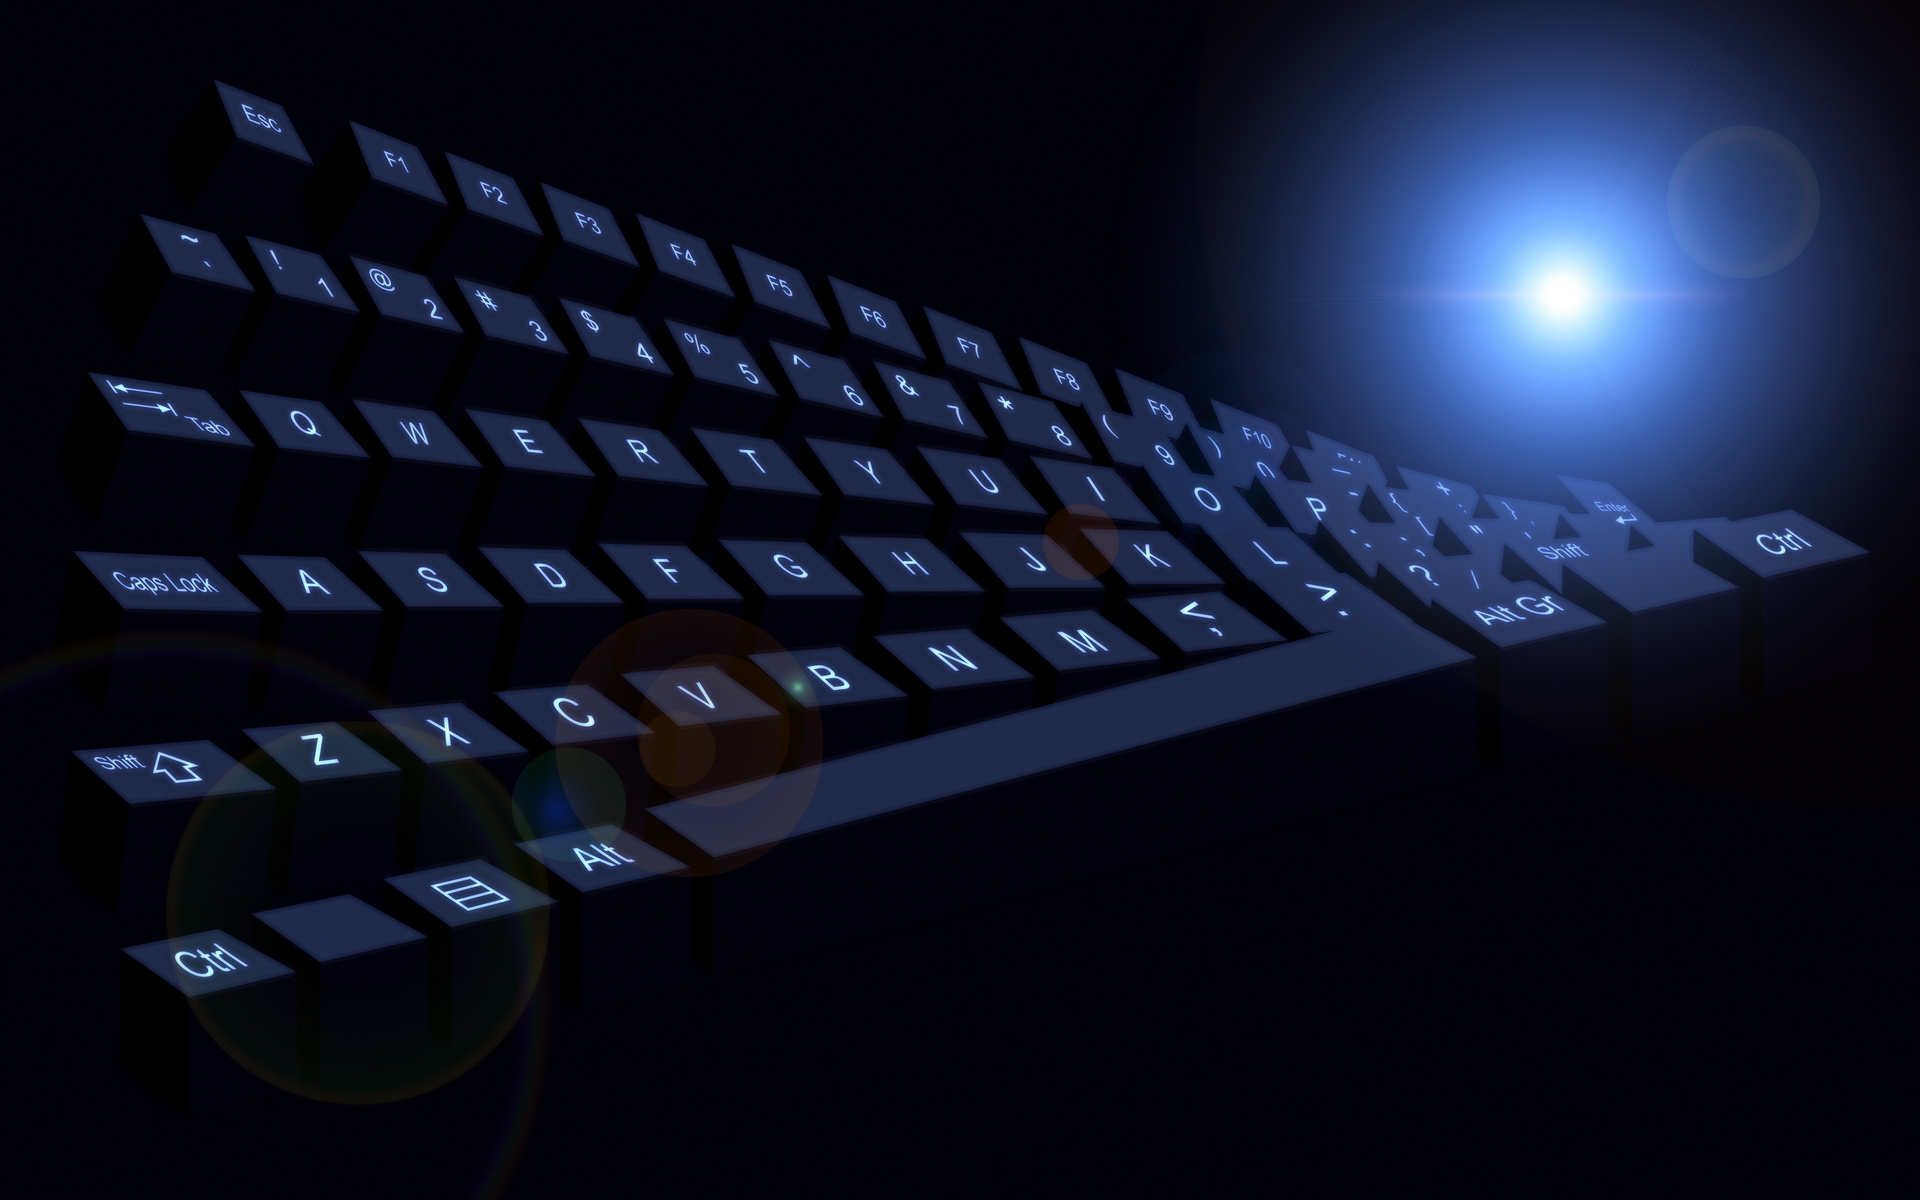 Keyboard Full HD Wallpaper and Background Image  1920x1200  ID362445